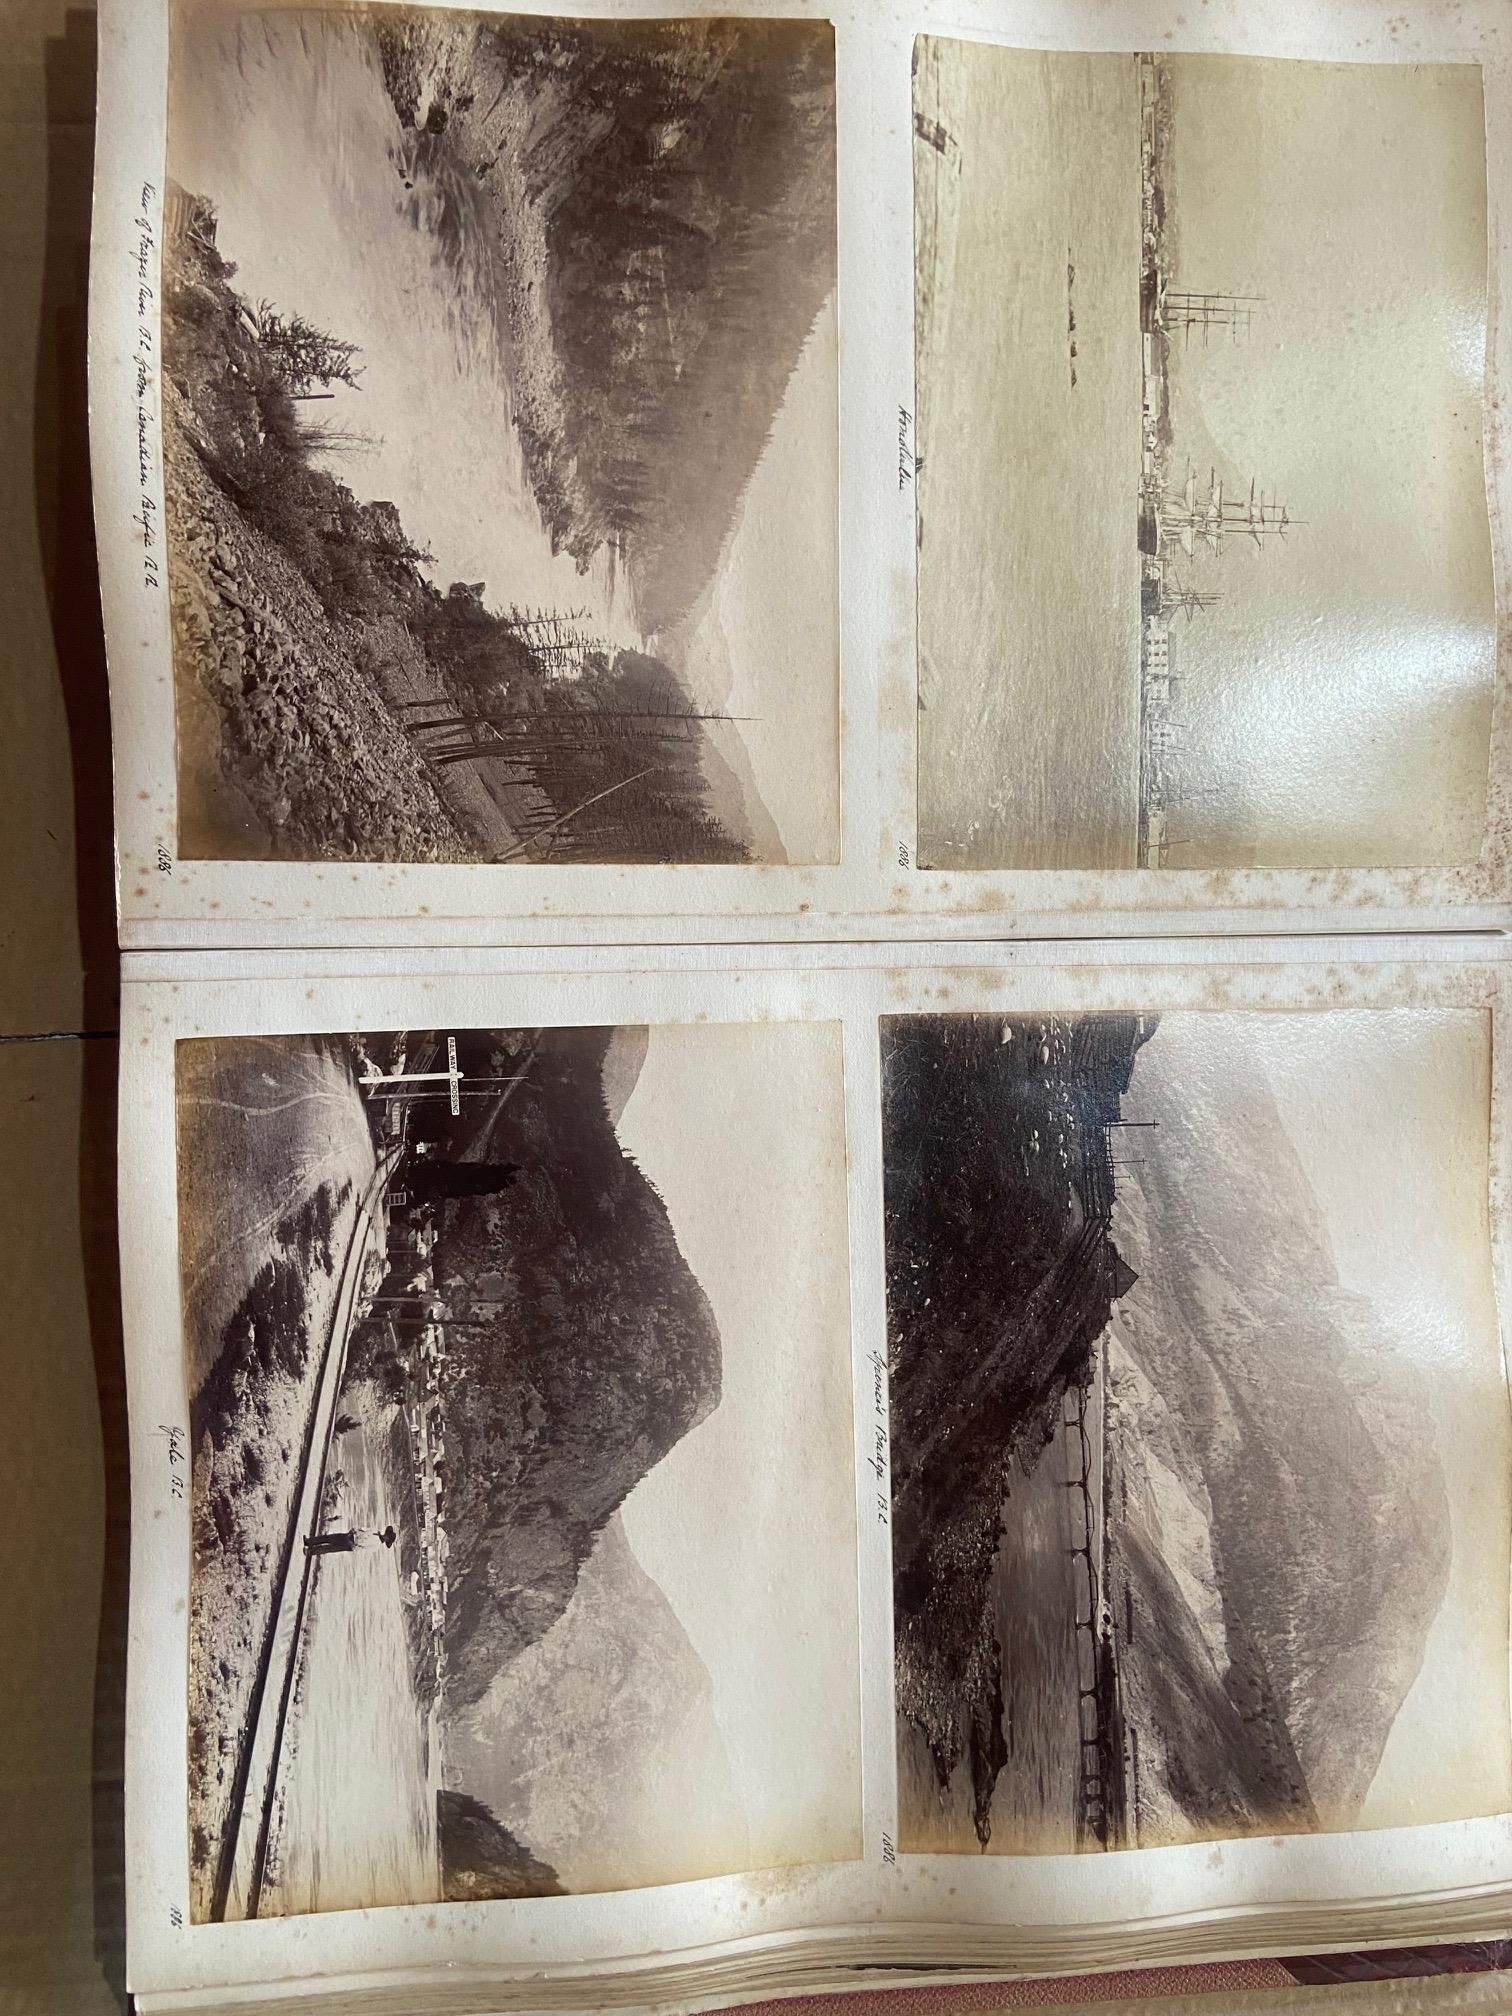 Photographs: Two large folio Albums of Photographs, each c. 1870 - 1890's. One Album contains - Image 13 of 31